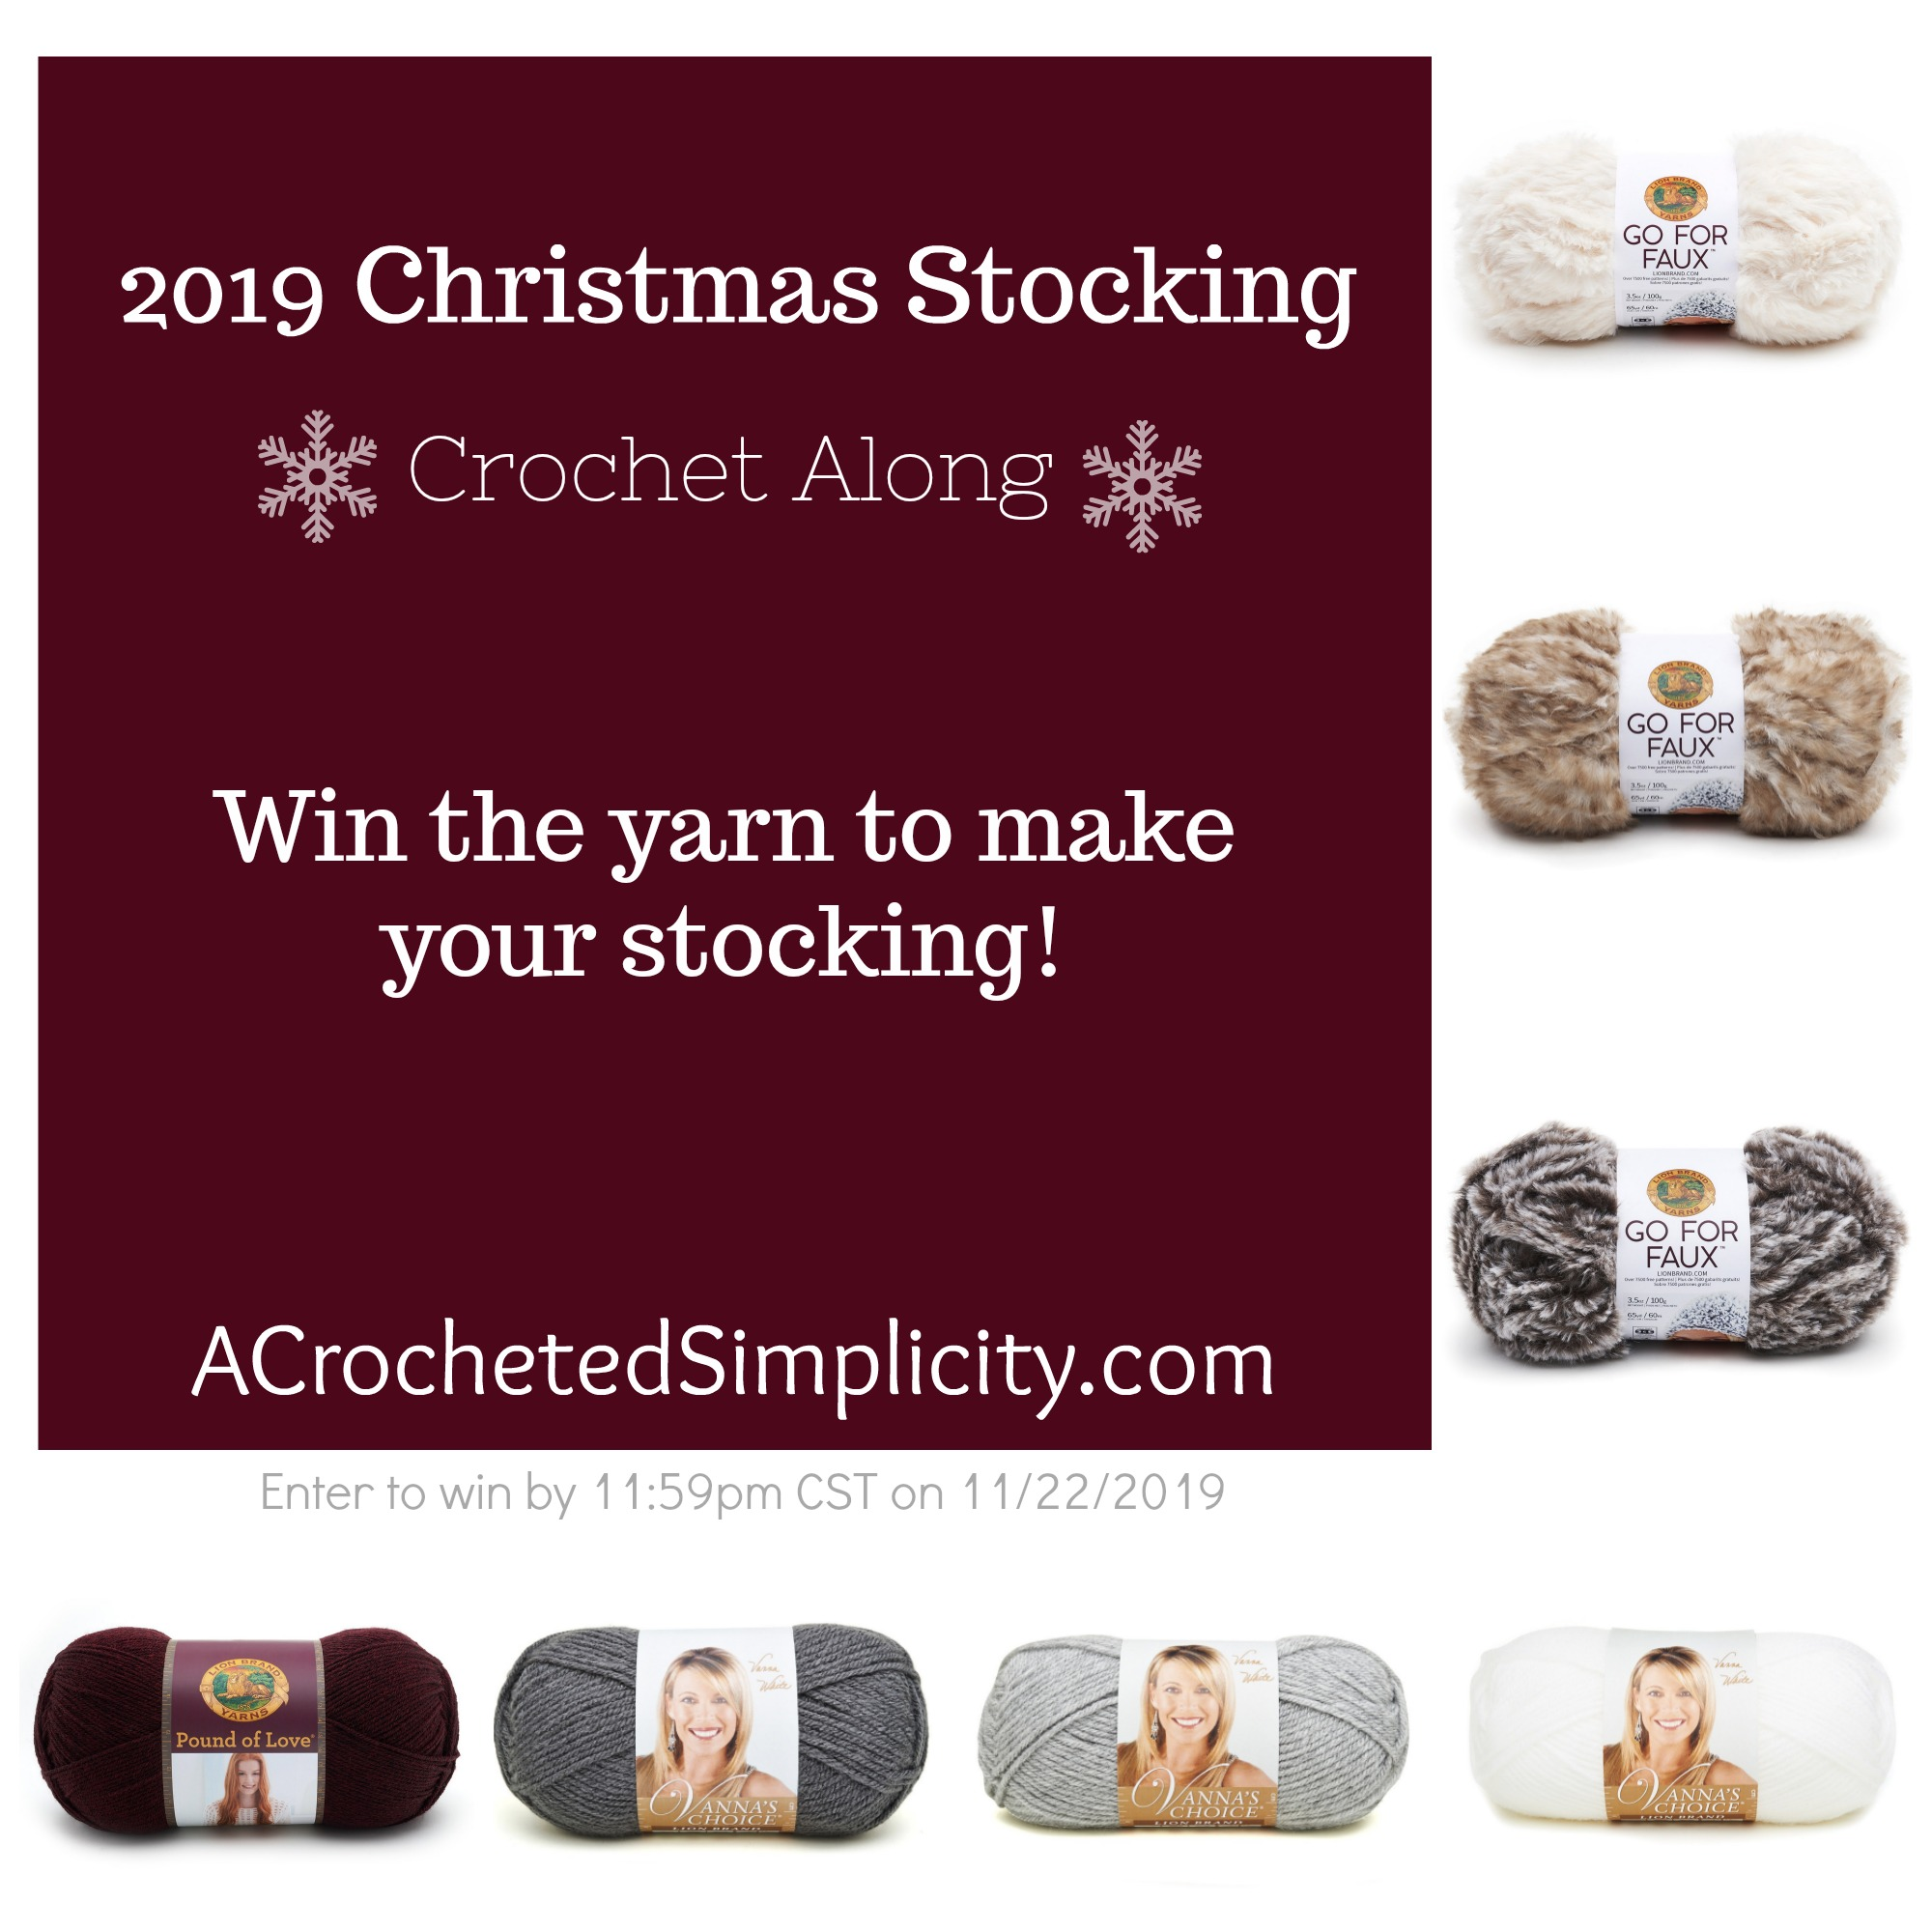 Join us for the 2019 Christmas Stocking Crochet Along! This is a free event for all with weekly prizes. We hope you'll join u